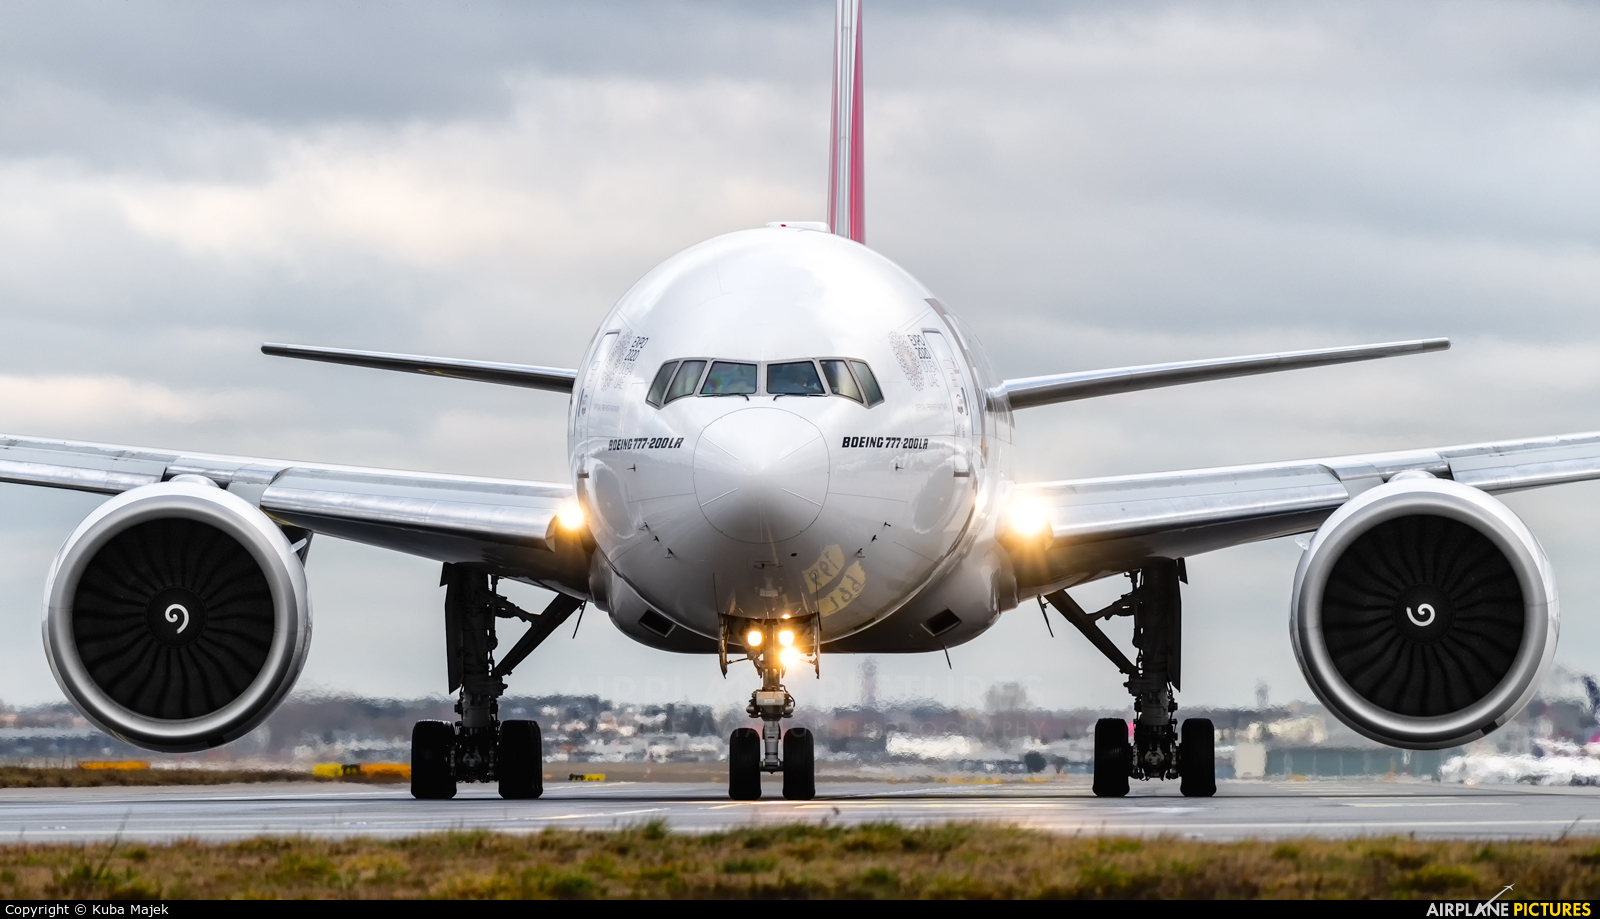 Emirates Airlines A6-EWH aircraft at Warsaw - Frederic Chopin